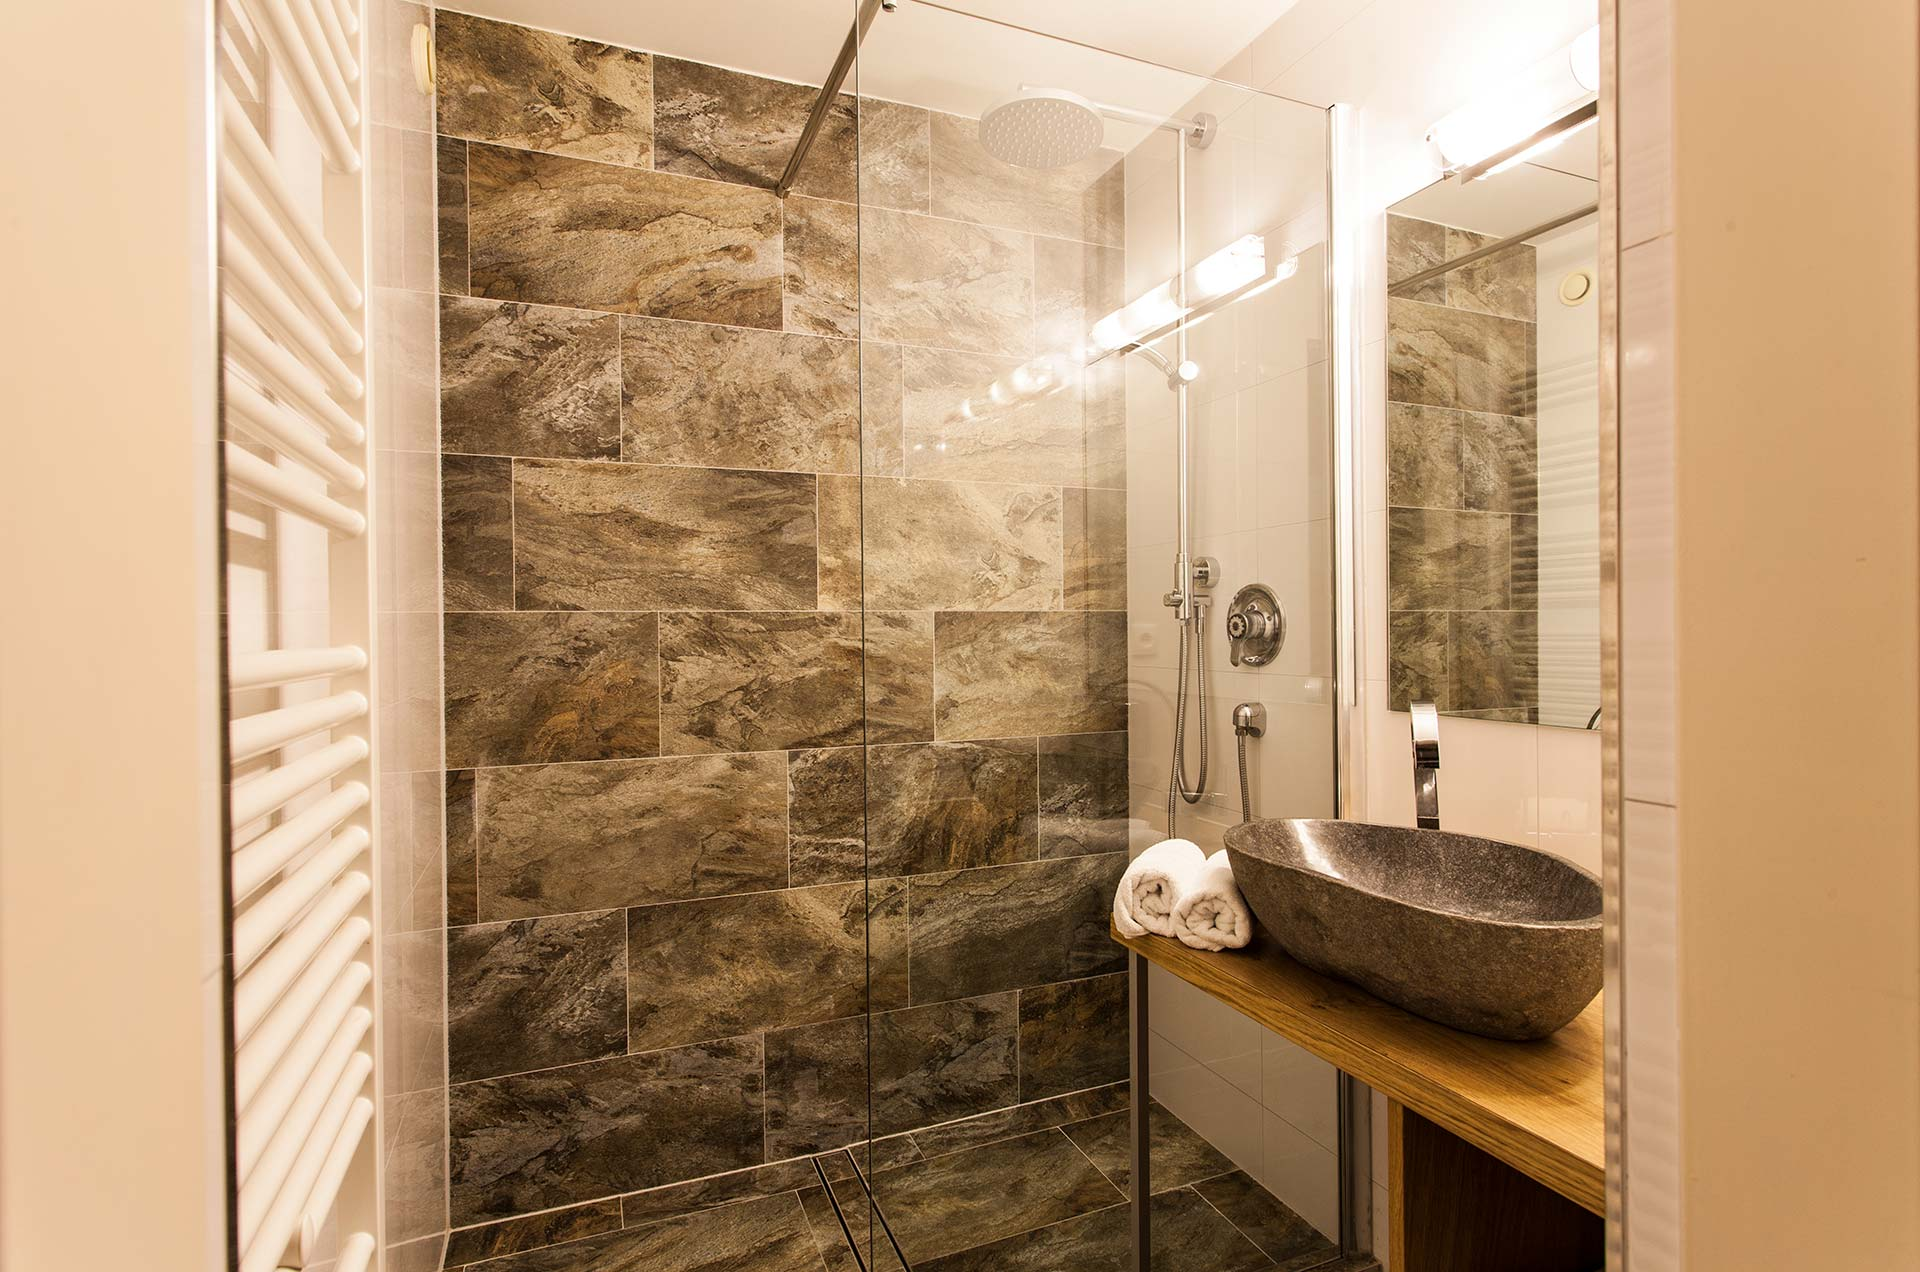 Picture Gallery Natur Residenz Anger Alm - Living at home badezimmer